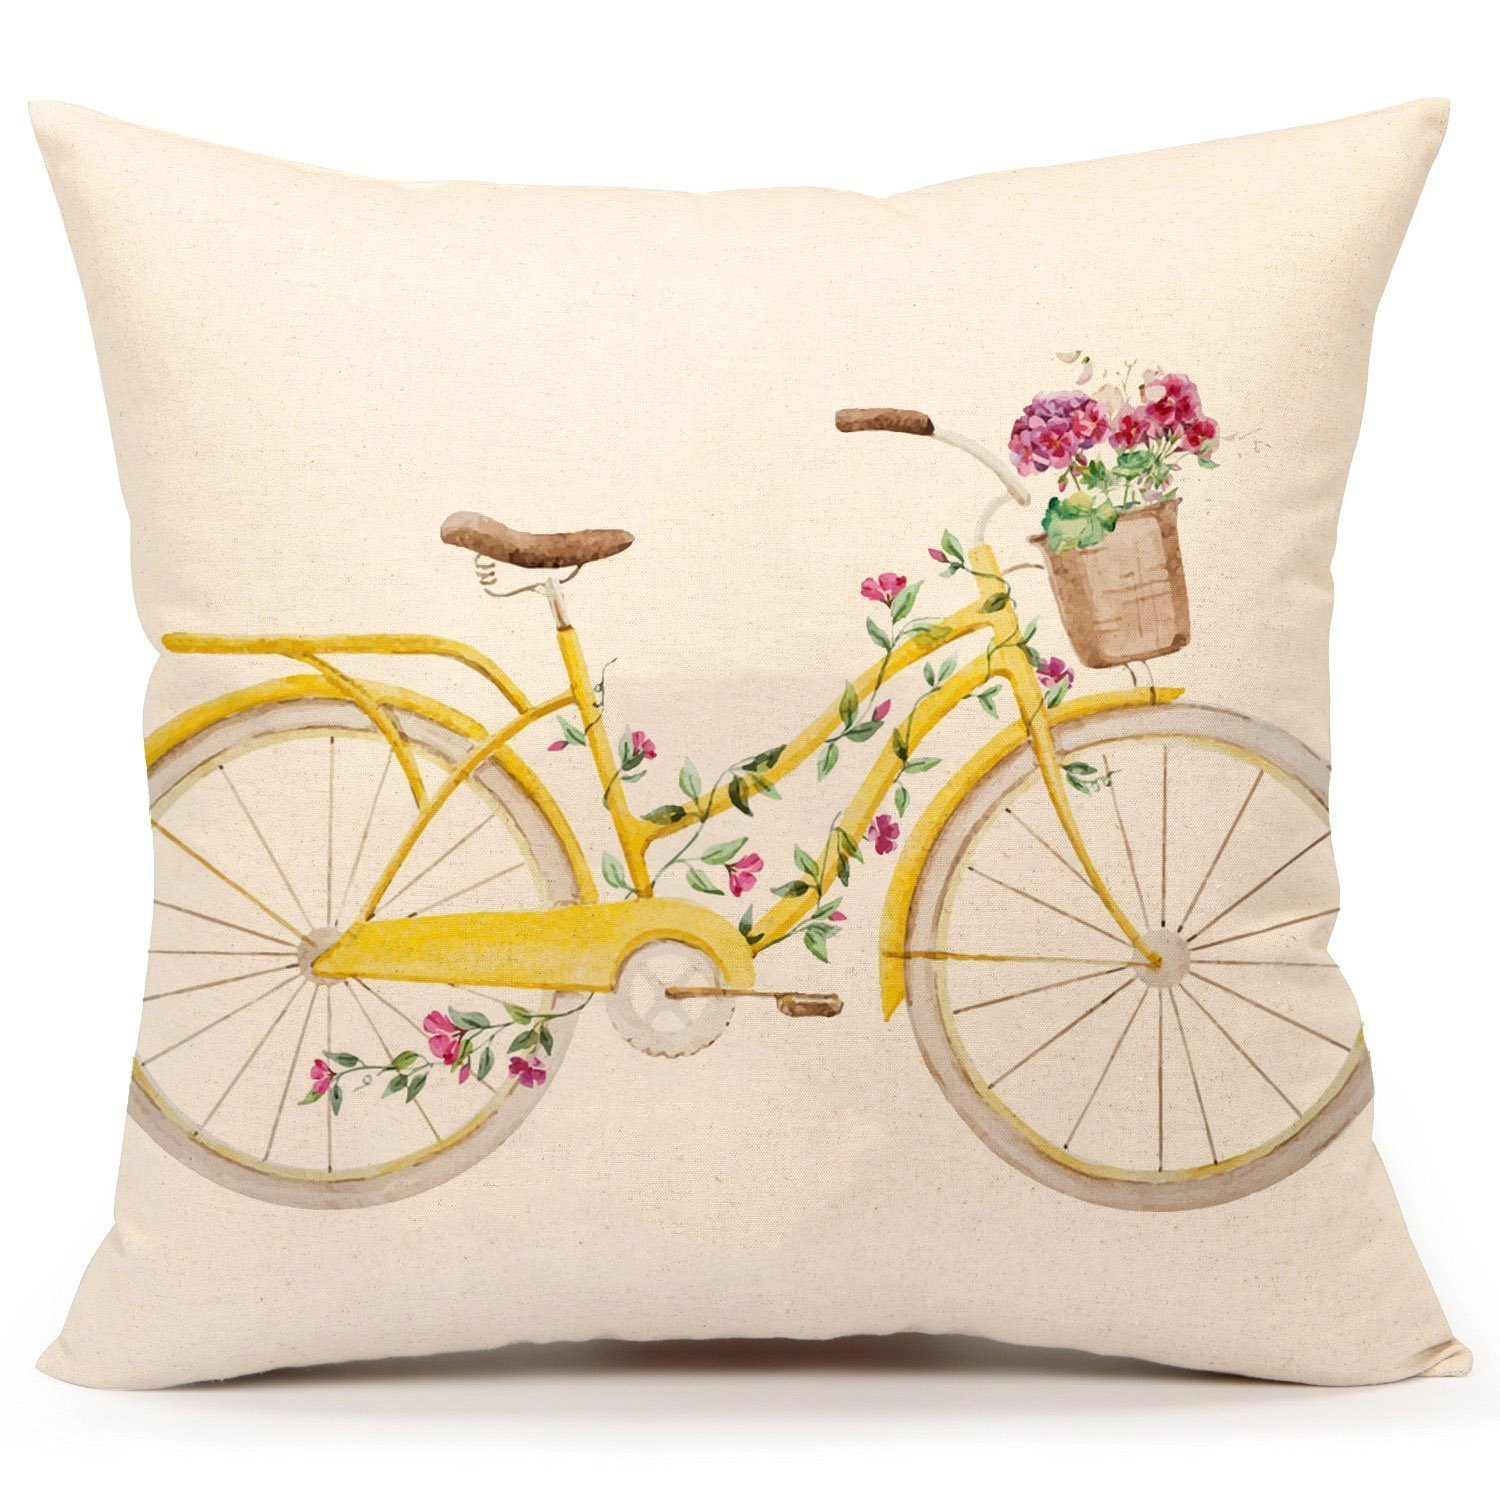 Amazon.com: Yellow Bicycle Throw Pillow Cover Vintage Home ...